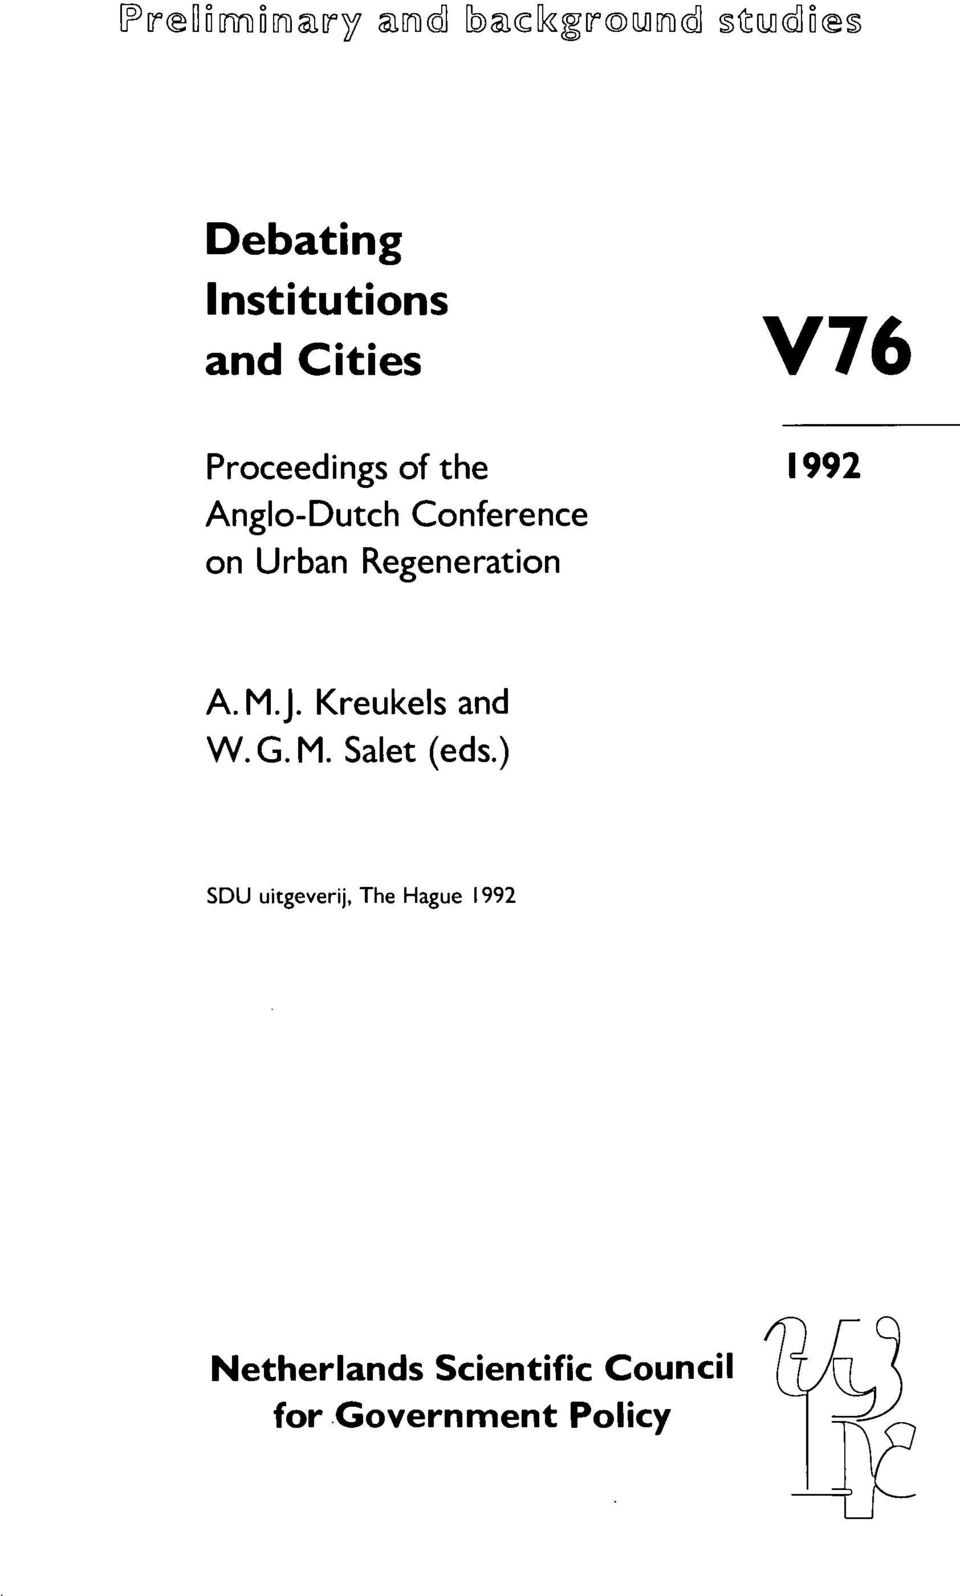 Kreukels and W. G. M. Salet (eds.